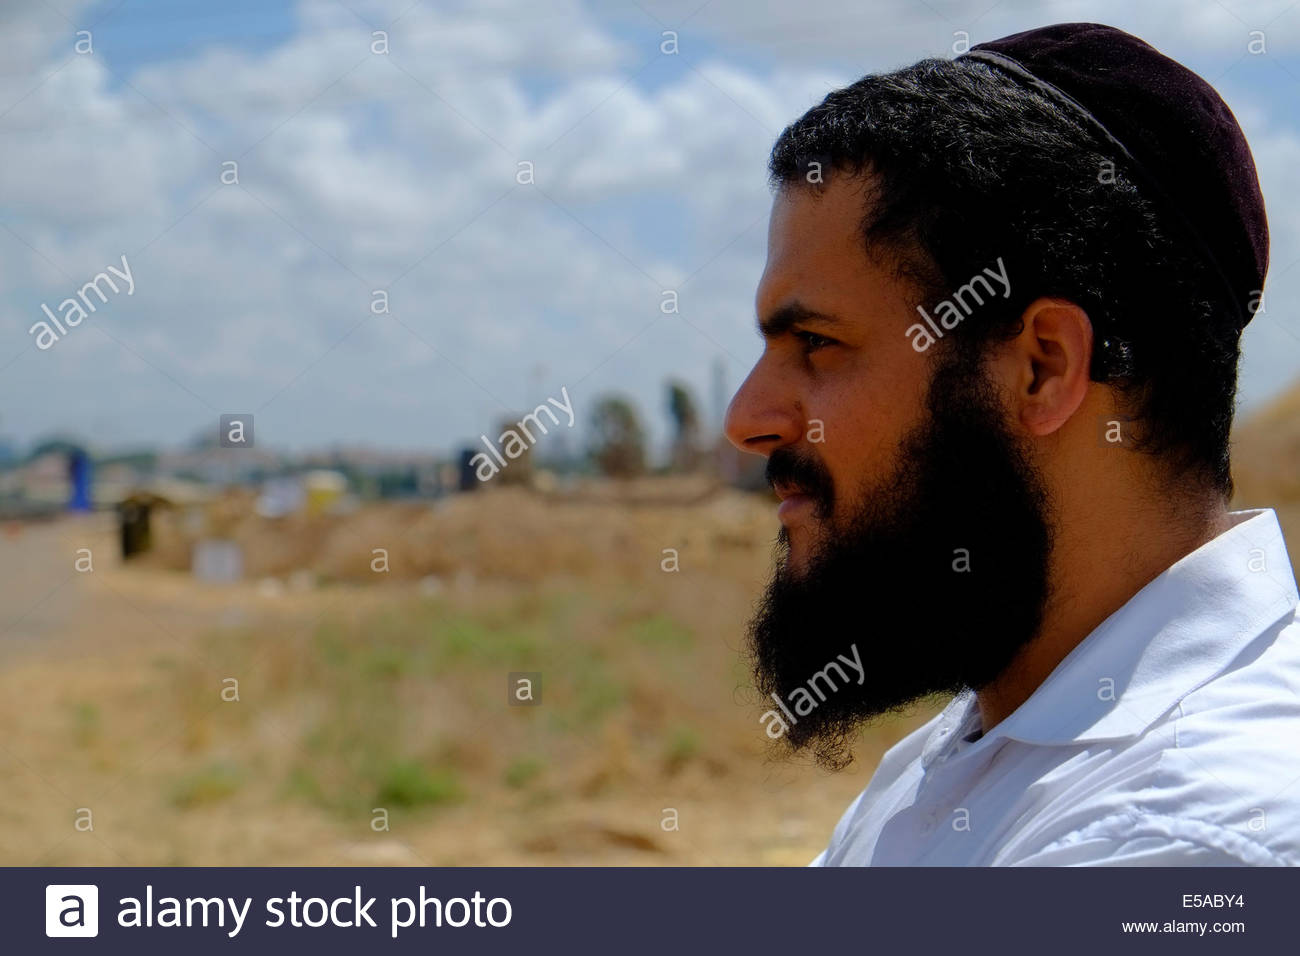 An ultra orthodox Jewish civilian with the Israeli anti missile device in background called The Iron Dome near Yahud - Stock Image